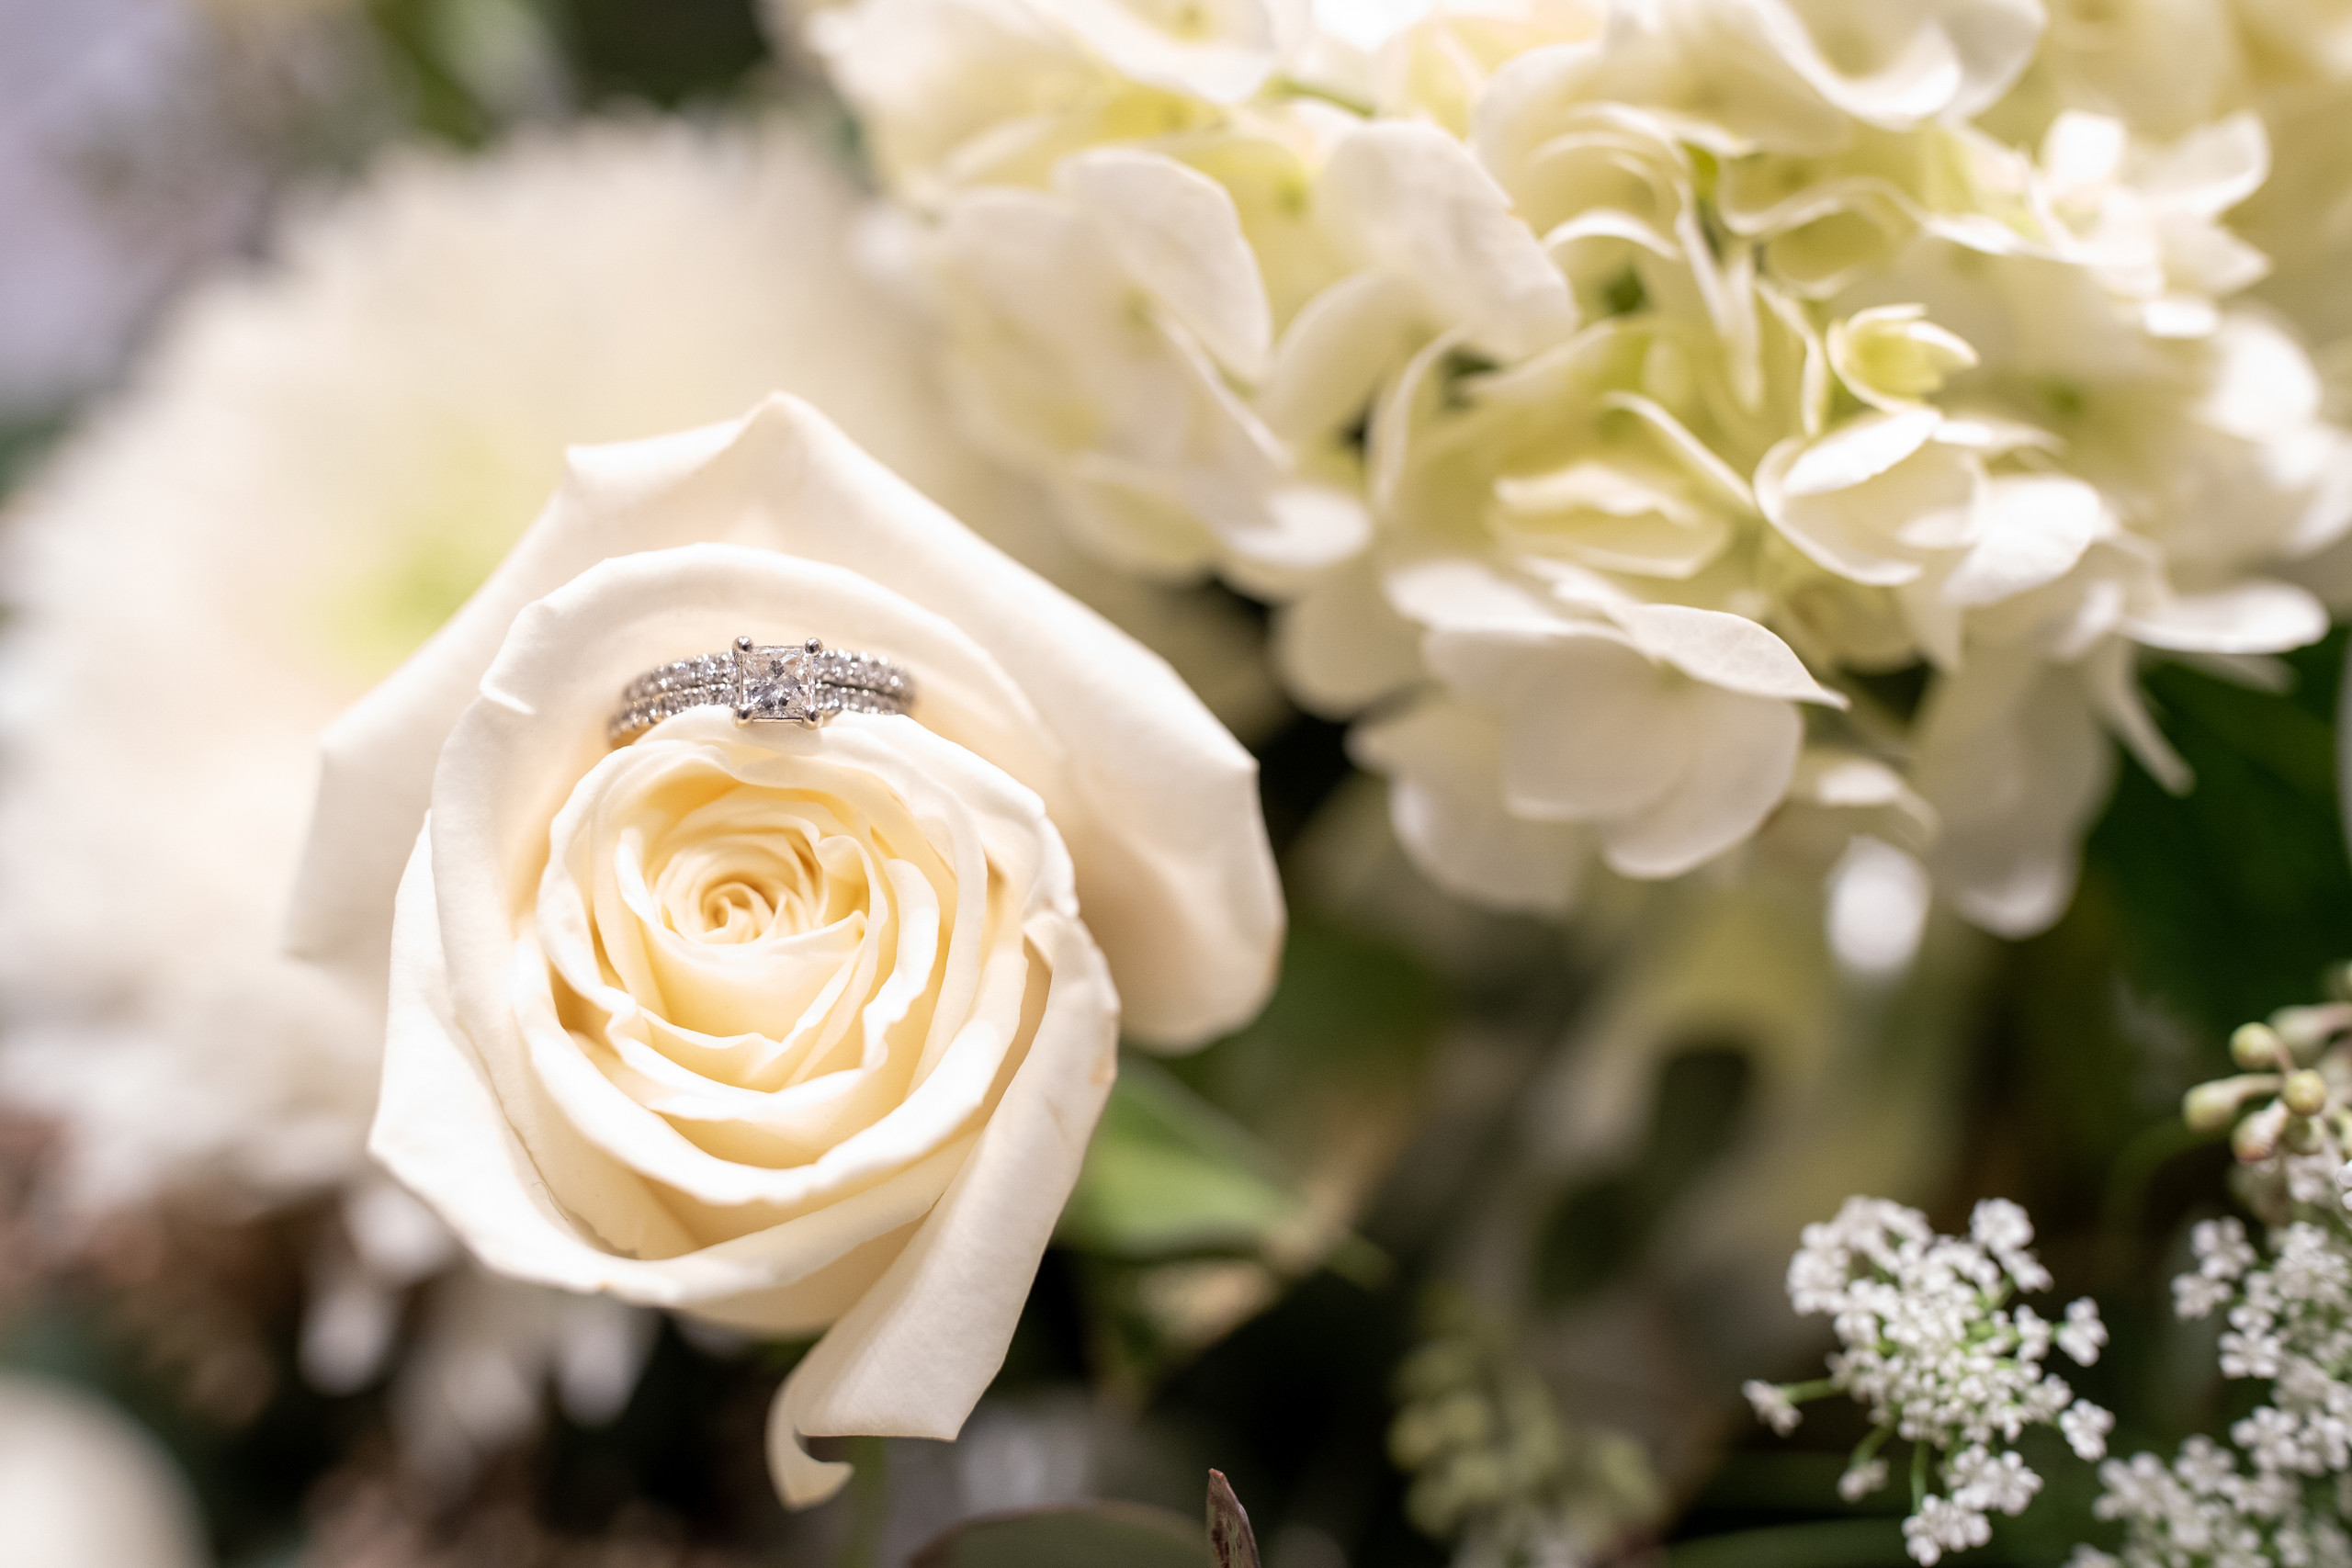 The bride's gorgeous diamond ring sitting in her white rose bouquet before the wedding ceremony at the Hilton Main in Norfolk, Virginia.